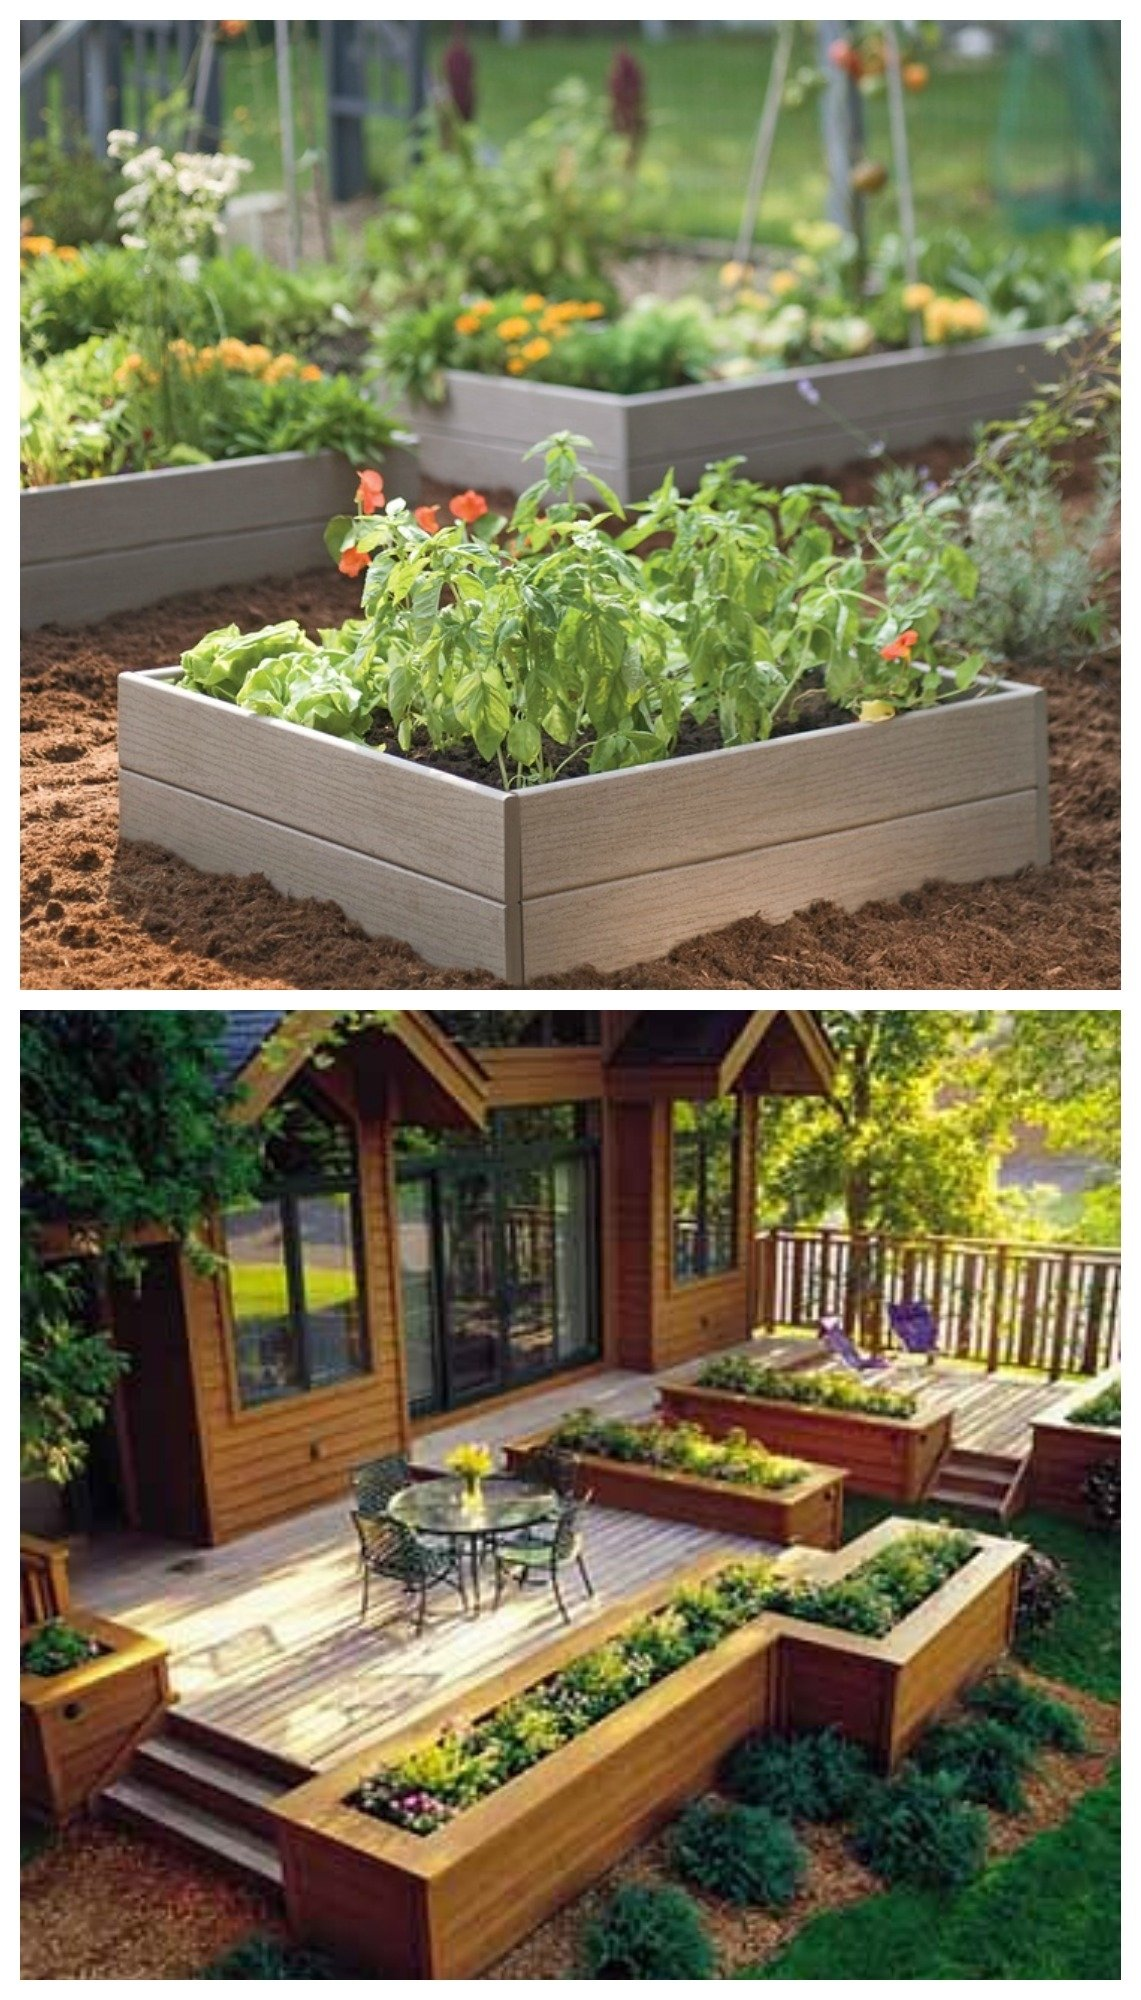 10 nice do it yourself garden ideas 10 nice do it yourself garden ideas diy project e2 80 94 crafthubs 25 garden projects solutioingenieria Image collections